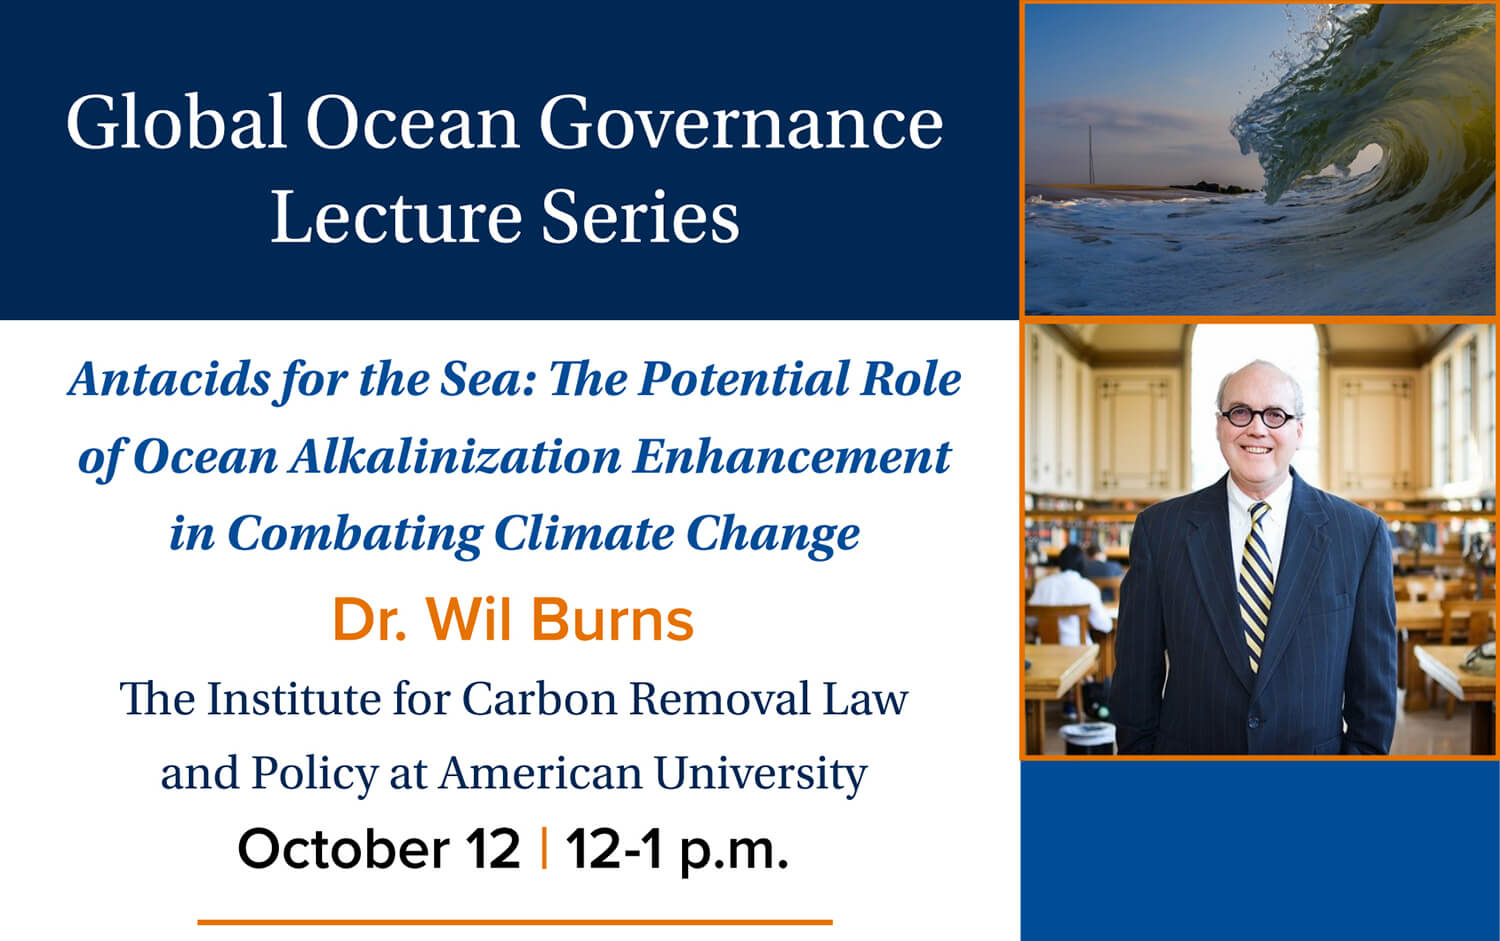 GU-UCI Global Ocean Governance Lecture Series